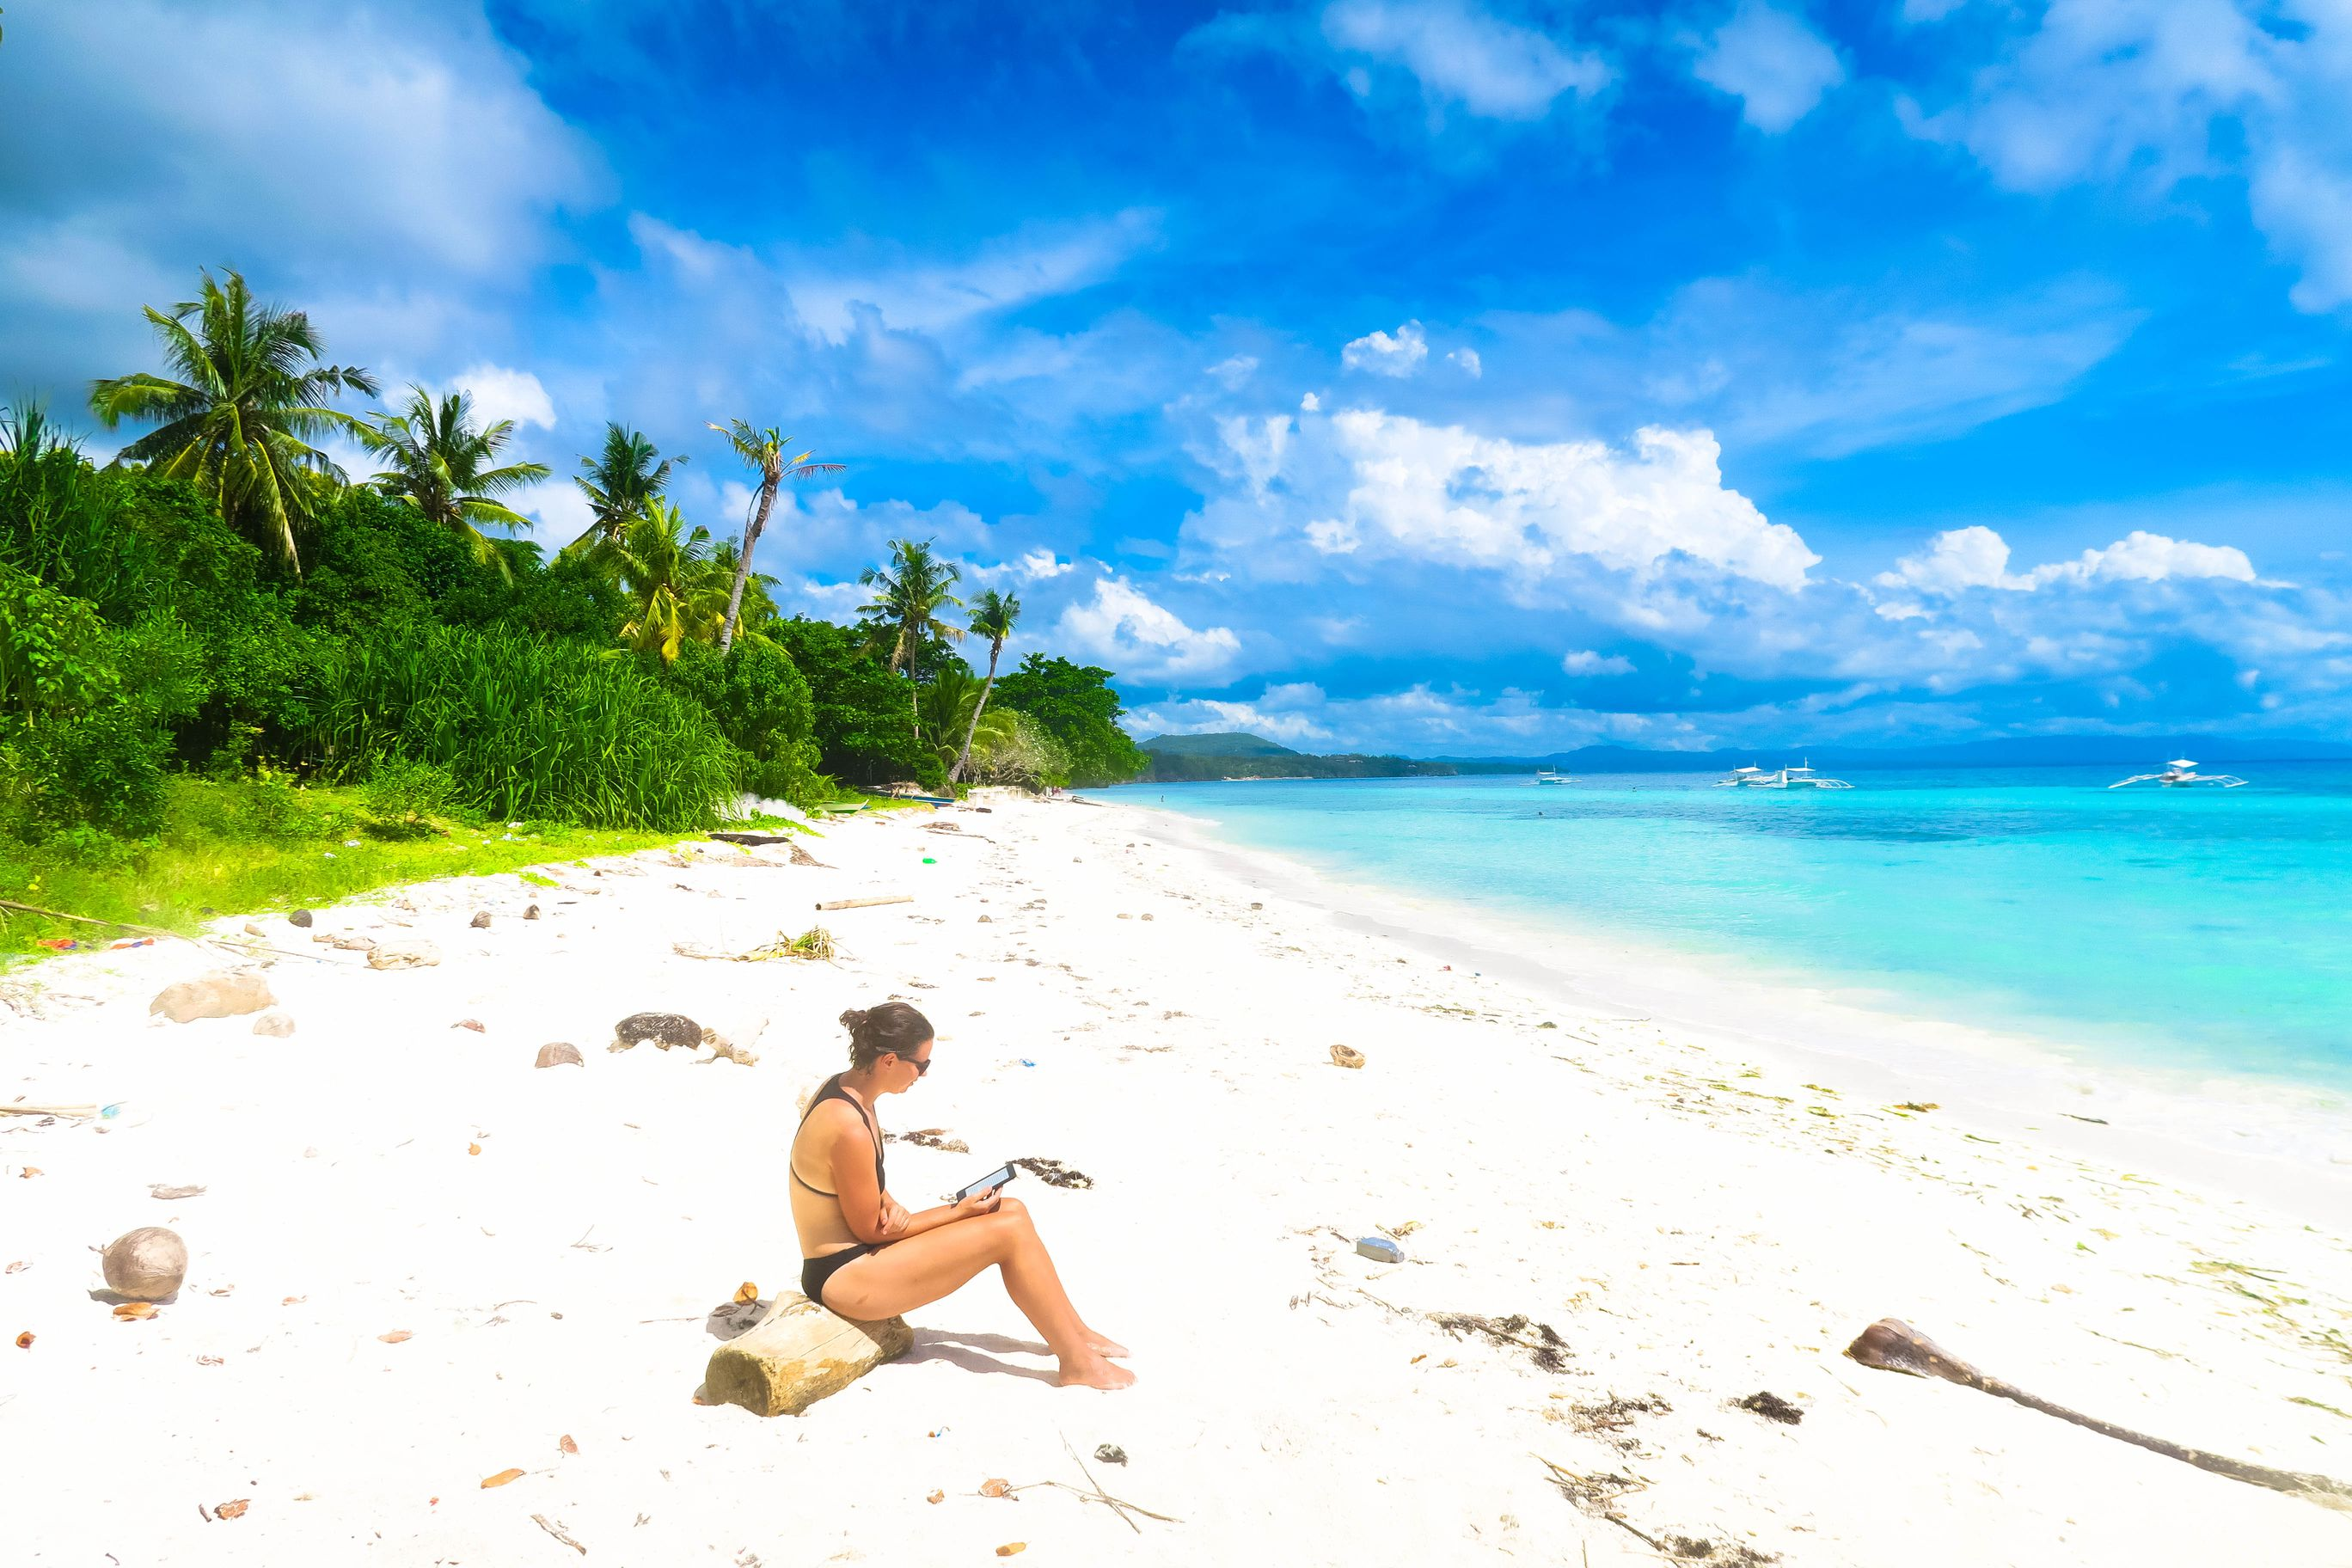 Woman using her phone while sitting on a white sand beach fronting blue and turquoise waters in Panglao, one of the most amazing places to visit in the Philippines